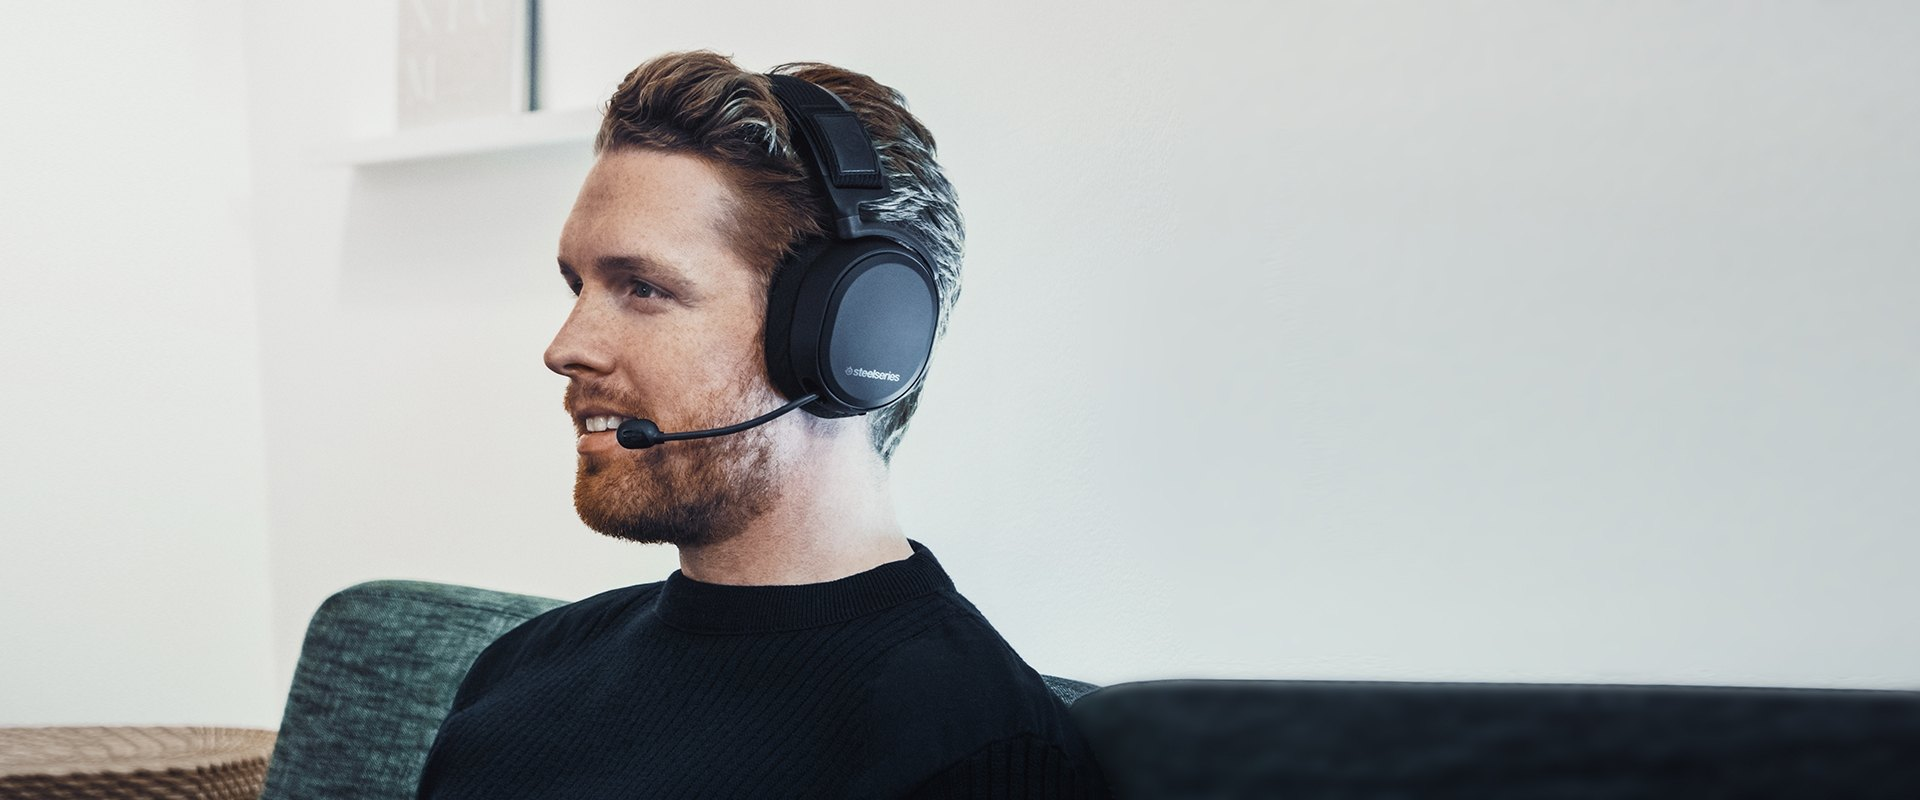 A user smiling while wearing the Arctis Pro -  Hi-res Profesyonel Gamer Kulaklık Wireless, microphone in the extended position